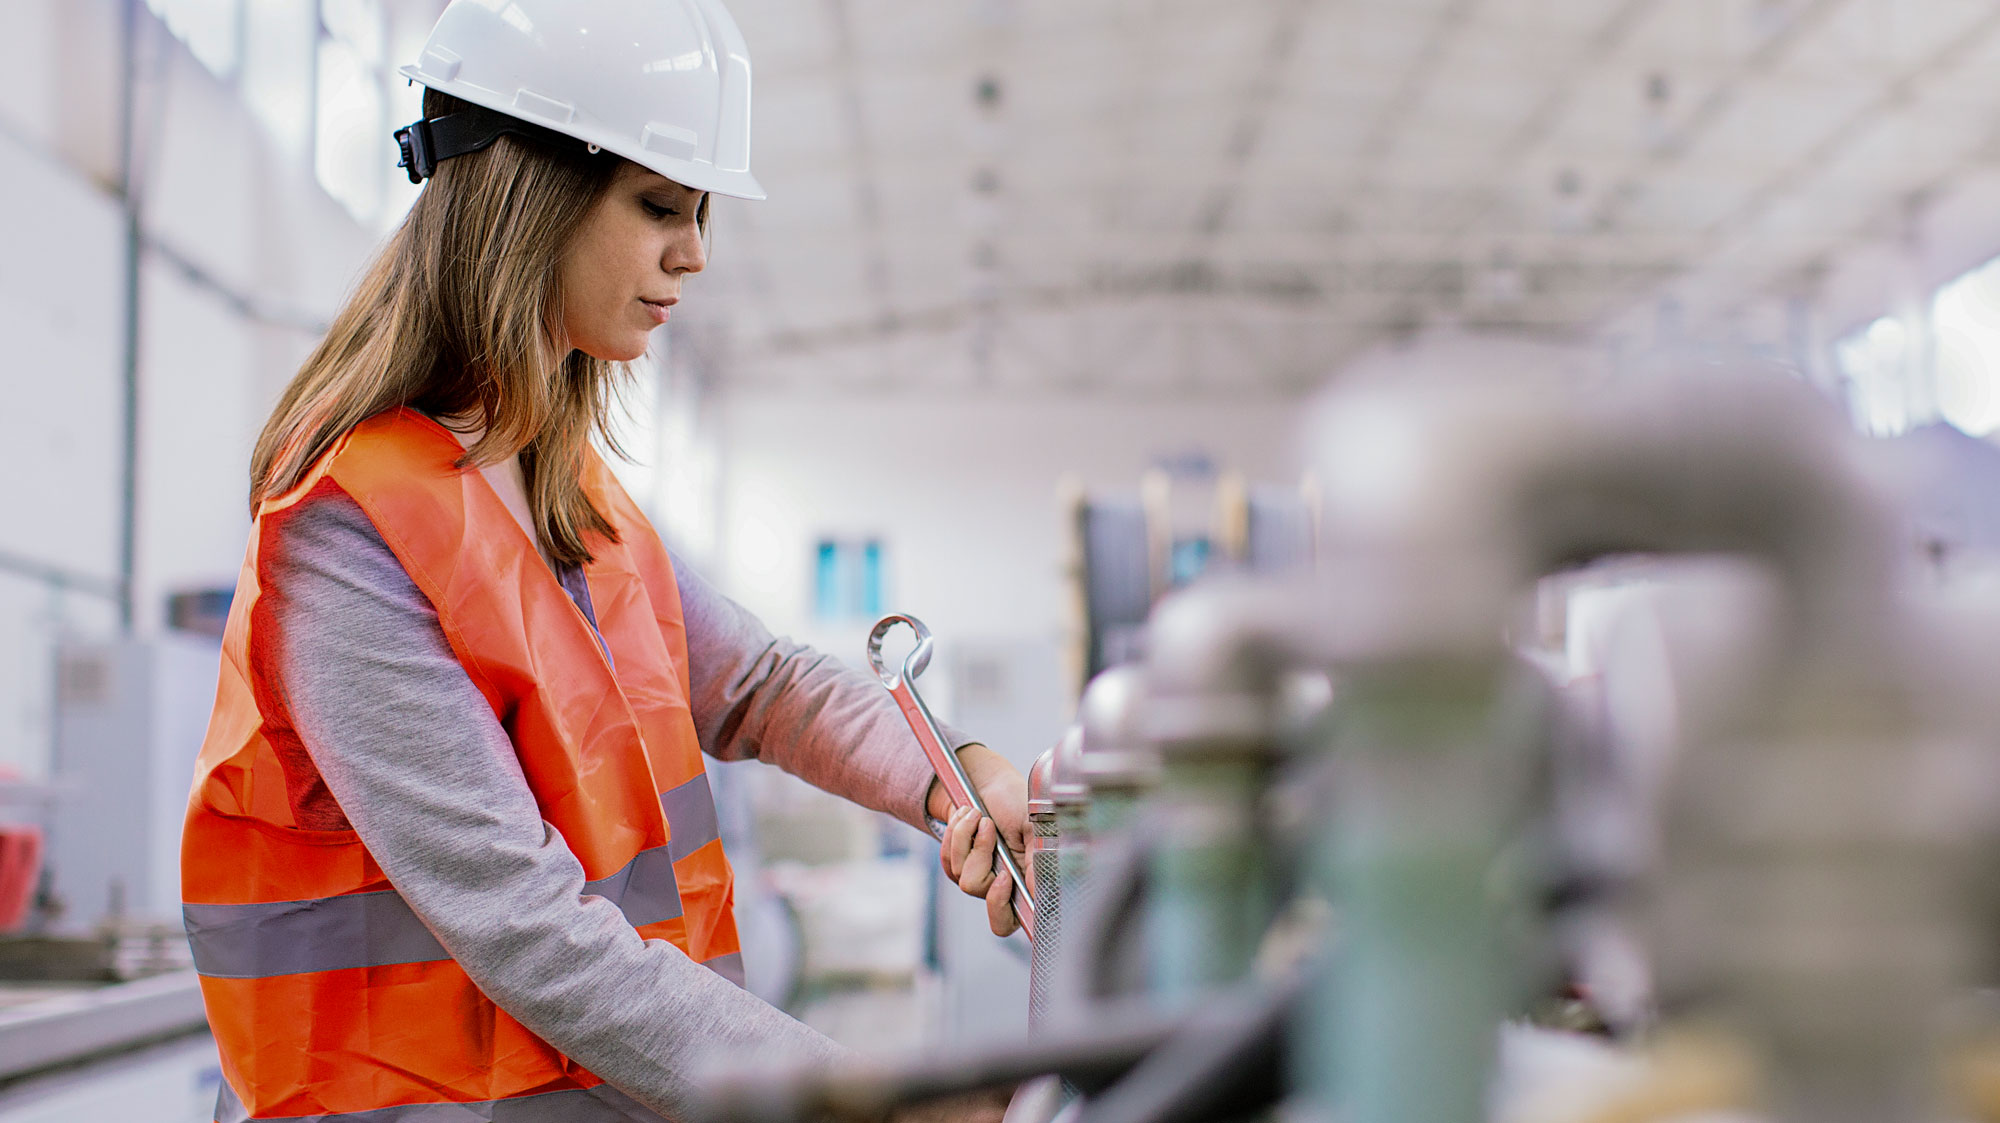 Woman in a hard hat and safety vest on a manufacturing line